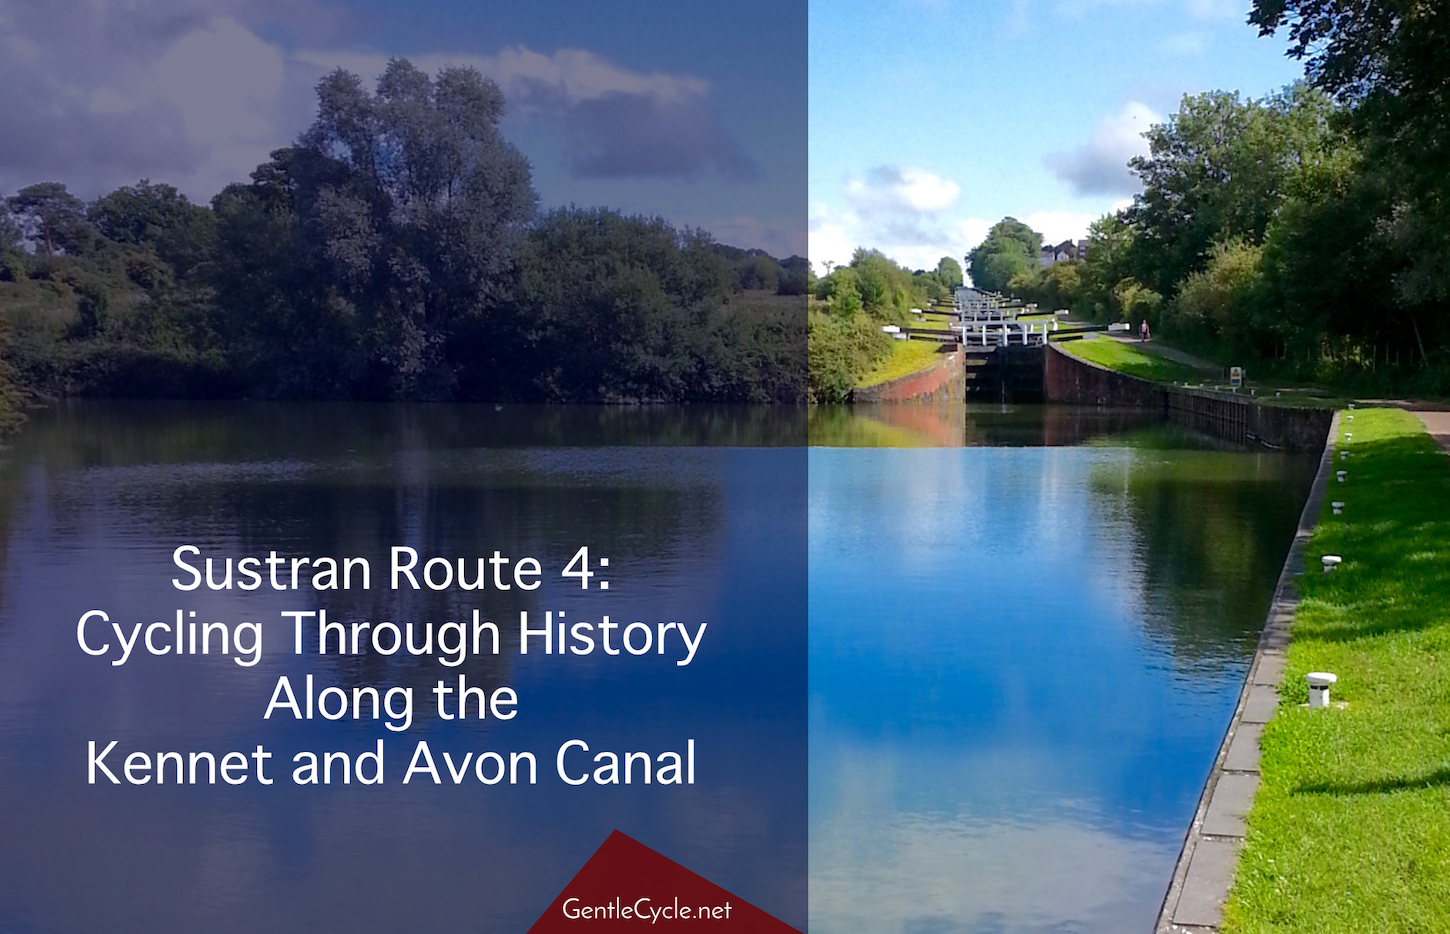 Locks along the Kennet and Avon Canal